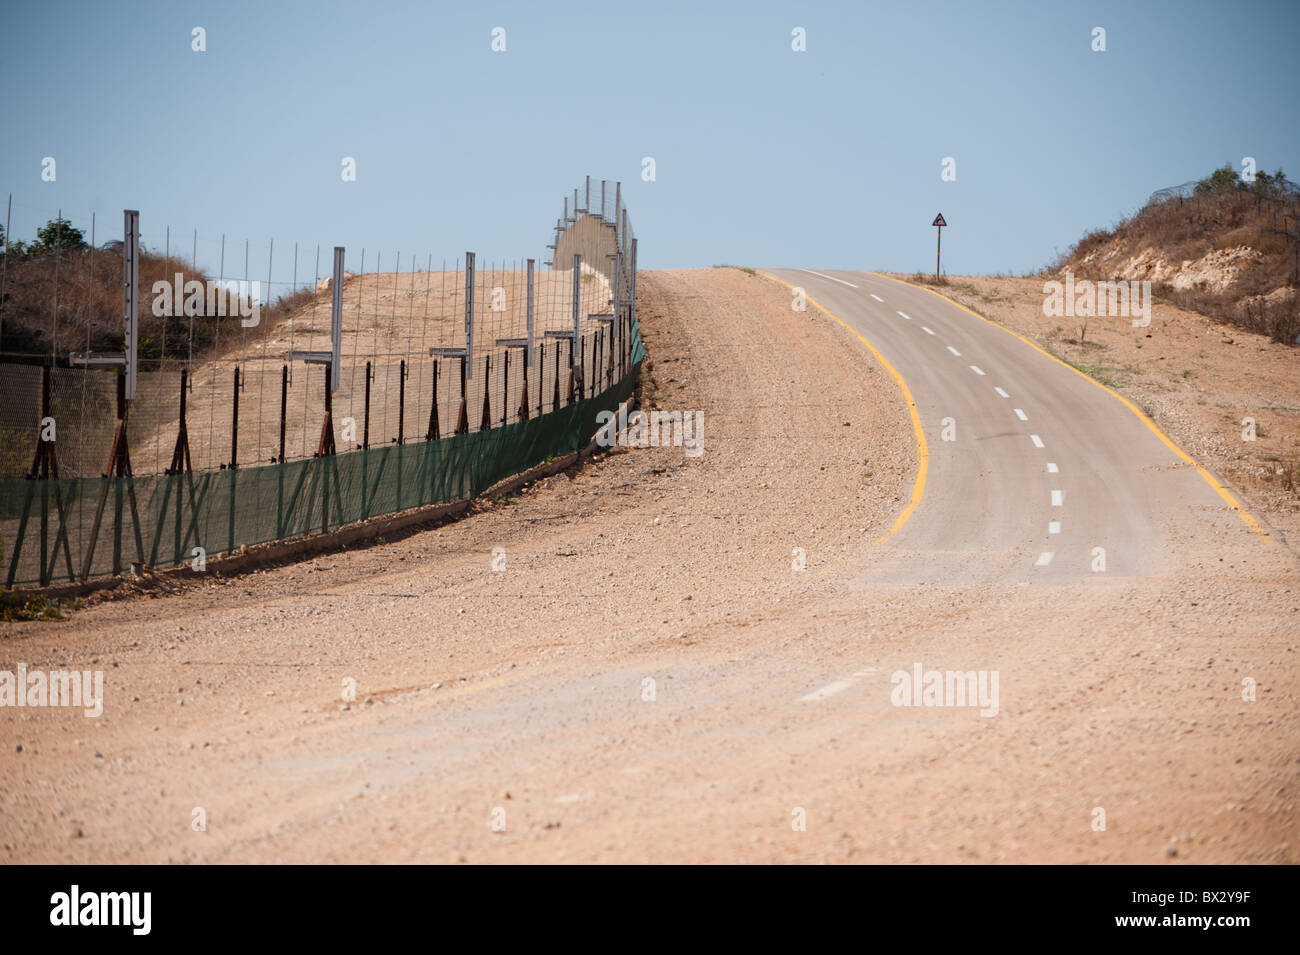 A section of the Israeli separation barrier--here, a fence with sensors to detect tampering. - Stock Image